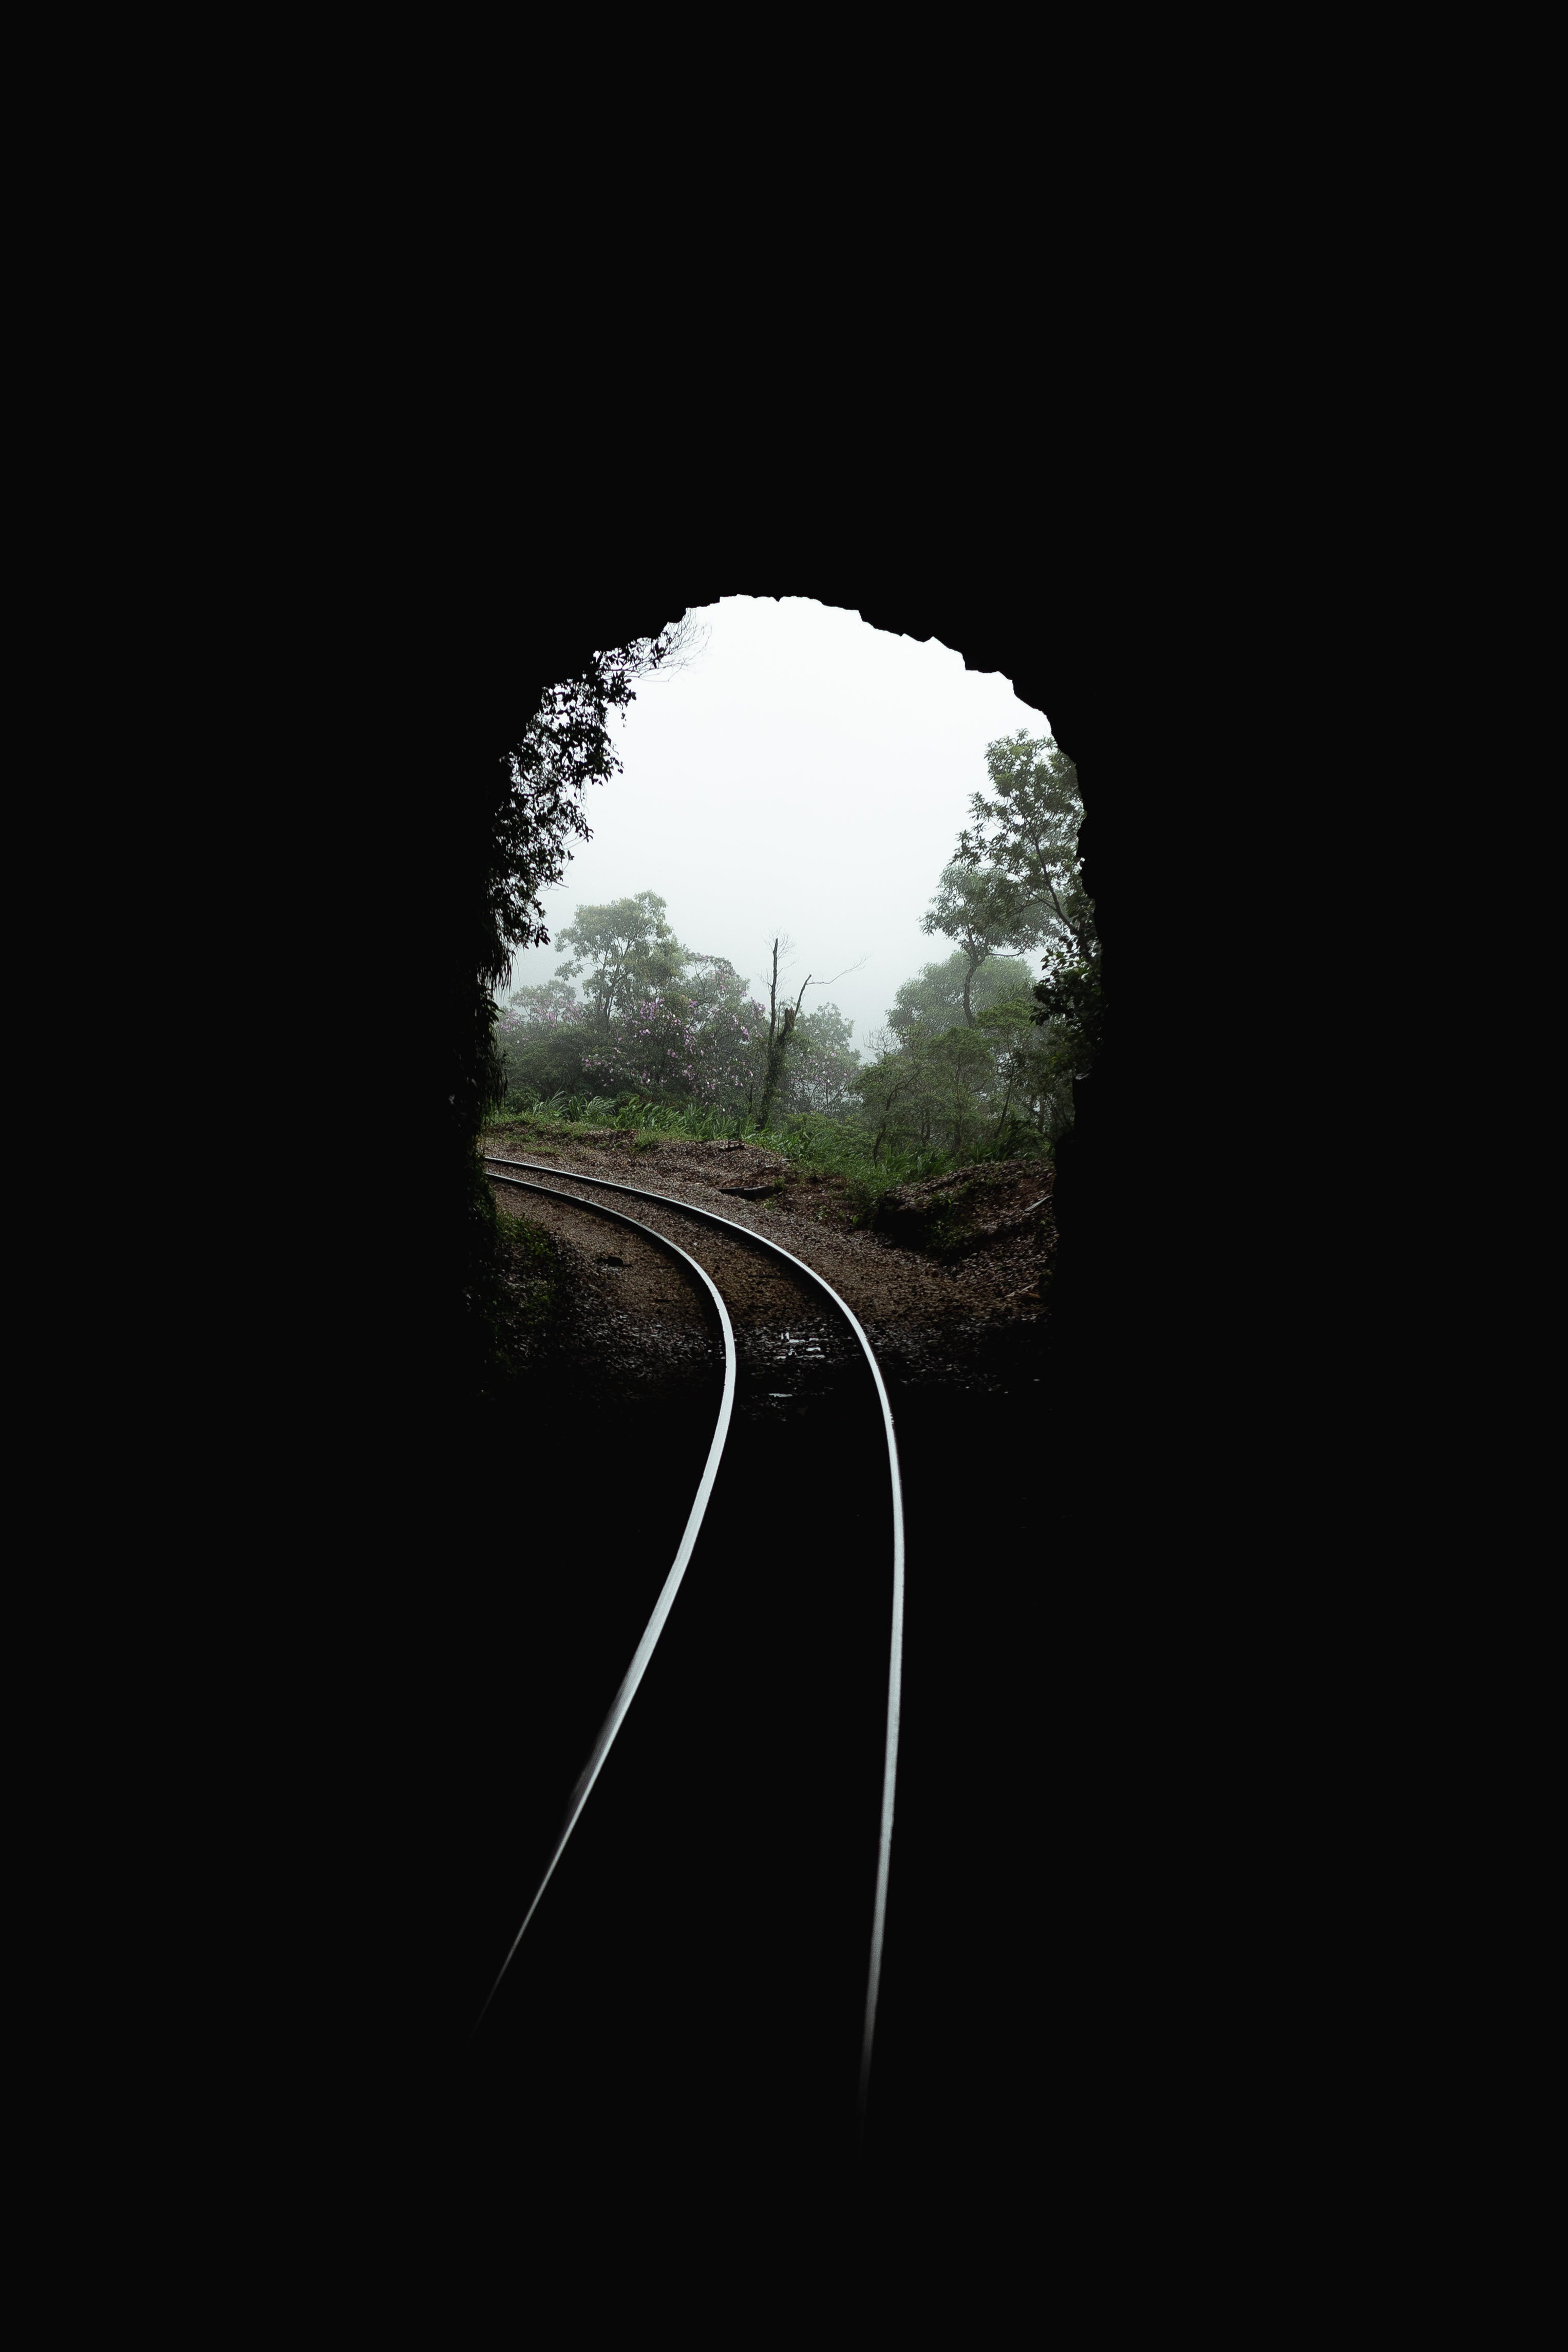 Rail on Tunnel